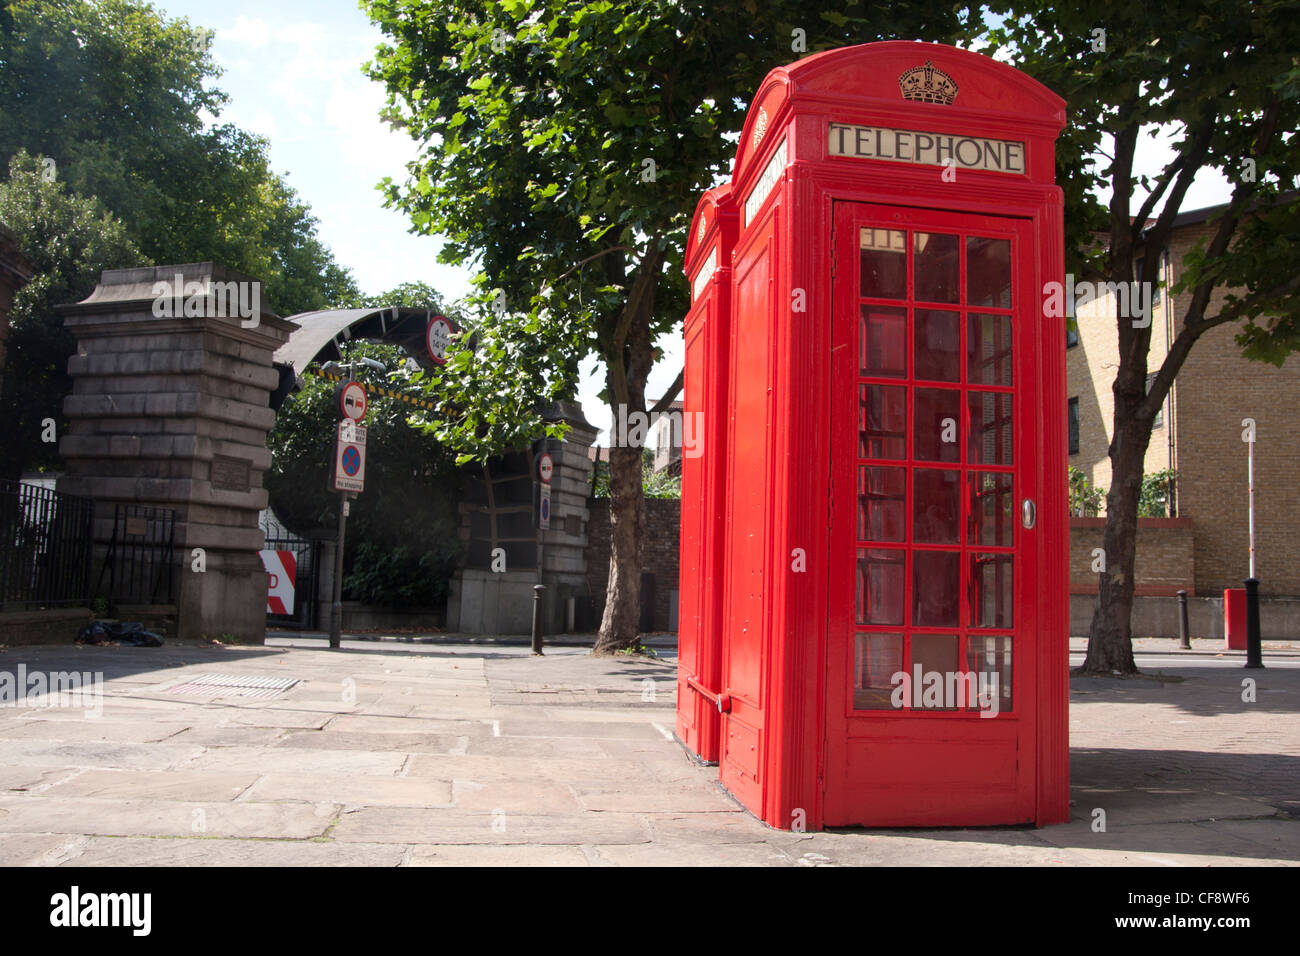 The red telephone box is a public telephone kiosk designed by Sir Giles Gilbert Scott, and can still be seen throughout - Stock Image